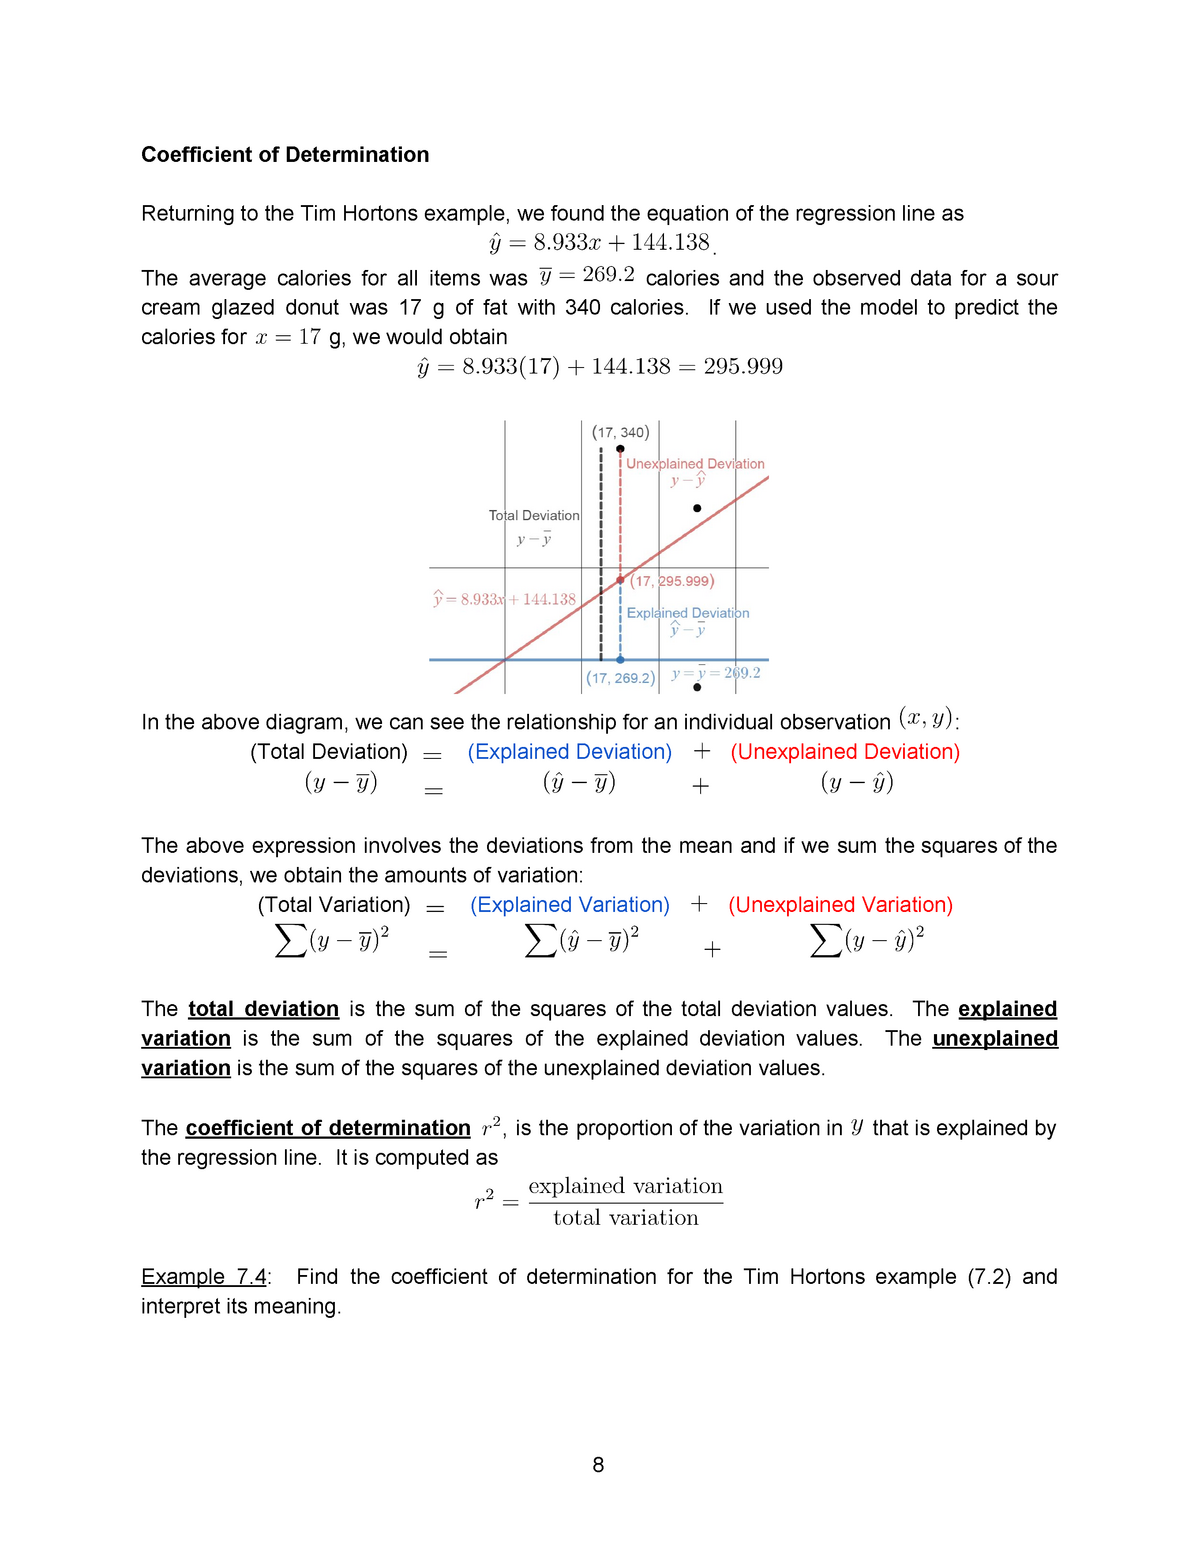 11 Chapter 6-8 Linear Regression (Continued) - Stat151